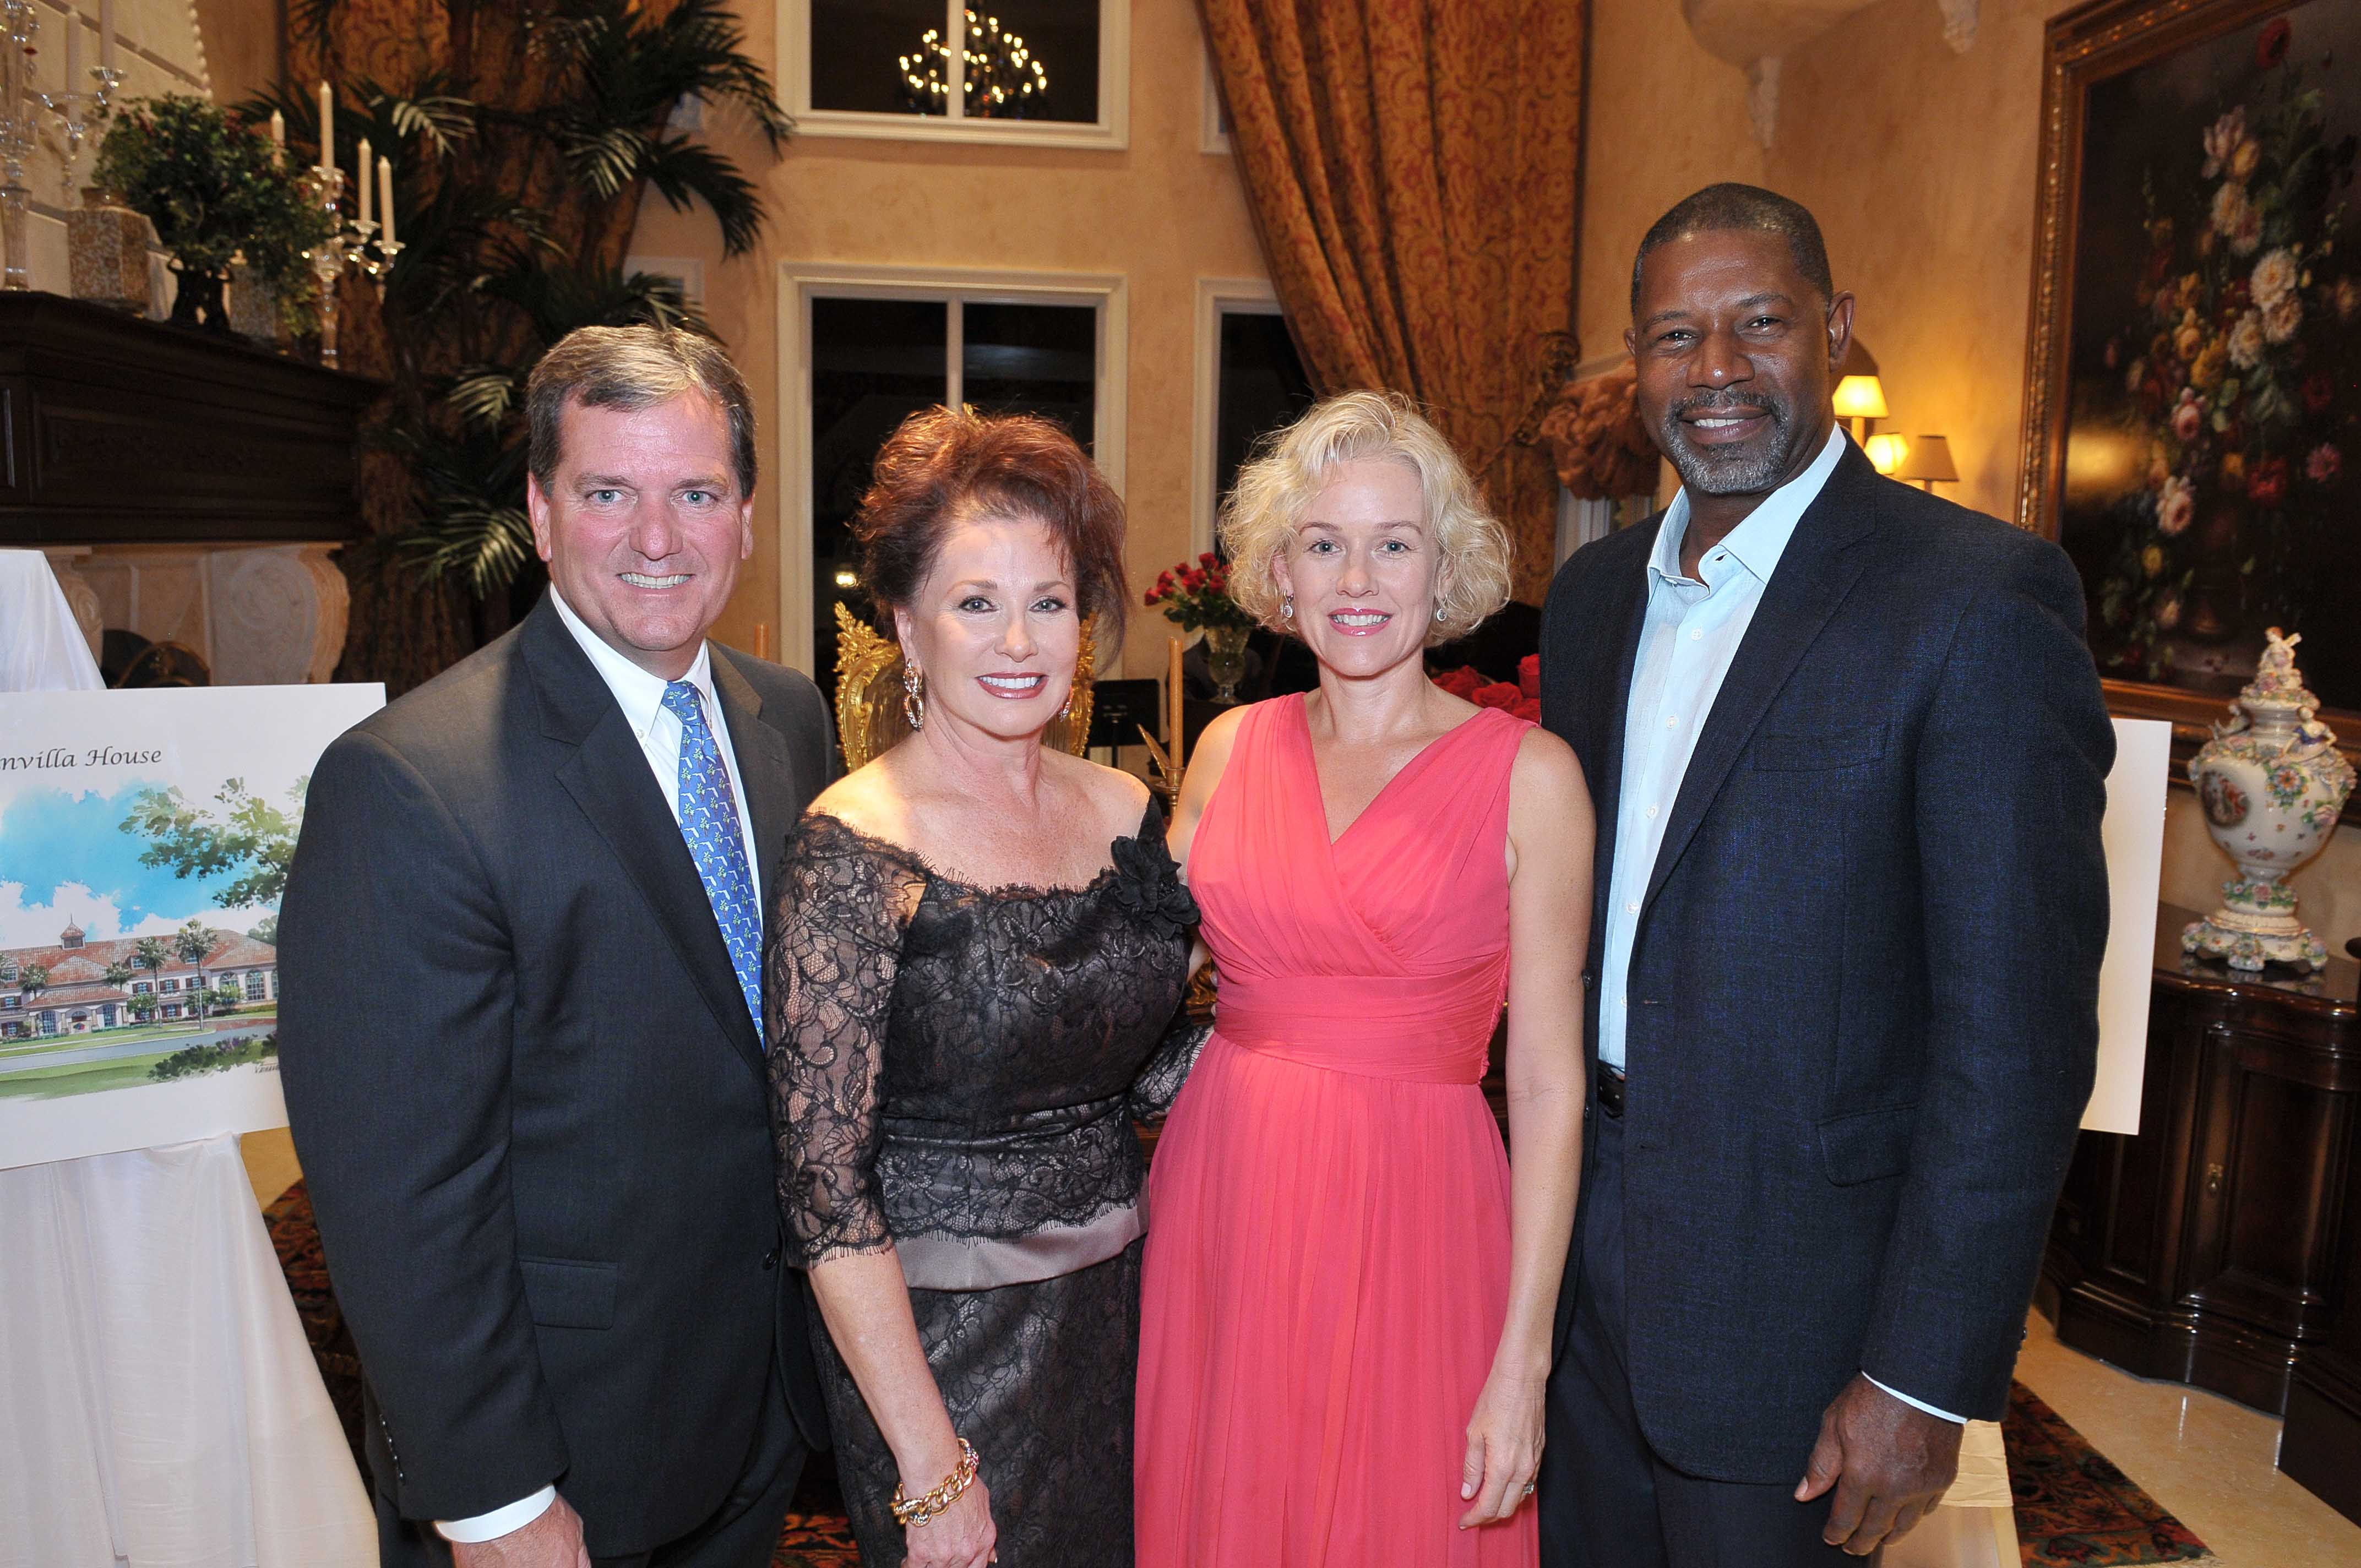 THE BOUGAINVILLA HOUSE HOSTED EXCLUSIVE KICK-OFF CELEBRATION WITH CELEBRITY GUESTS PENELOPE ANN MILLER, DENNIS HAYSBERT AND BEAU BRIDGES